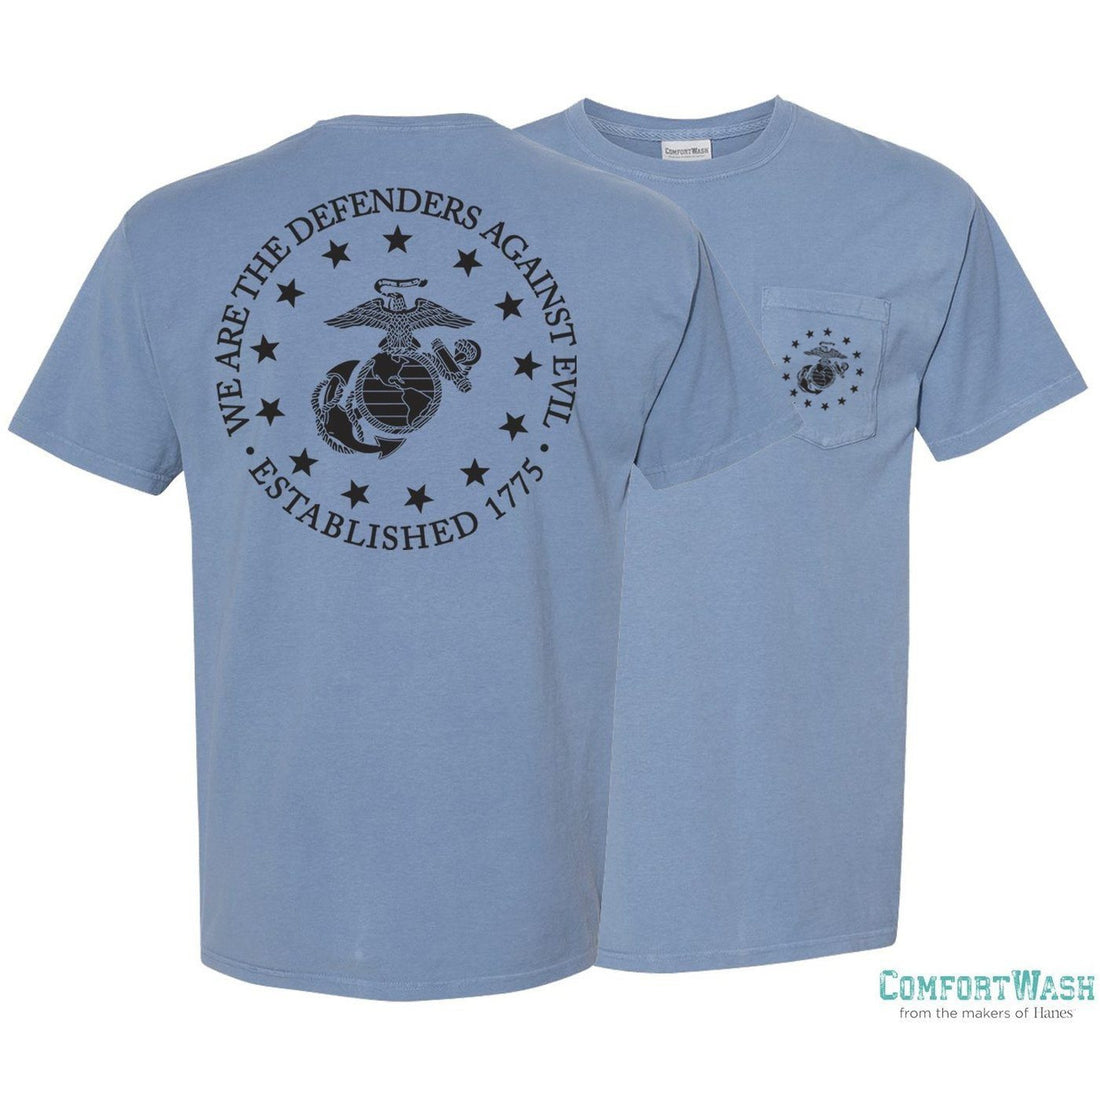 "Front and back view of the granite color USMC shirt from Marine Corps Direct with the eagle, globe, and anchor emblem on the front pocket and the words ""We are the defenders against evil. Established 1775"" on the back surrounding a large eagle, globe, and anchor."